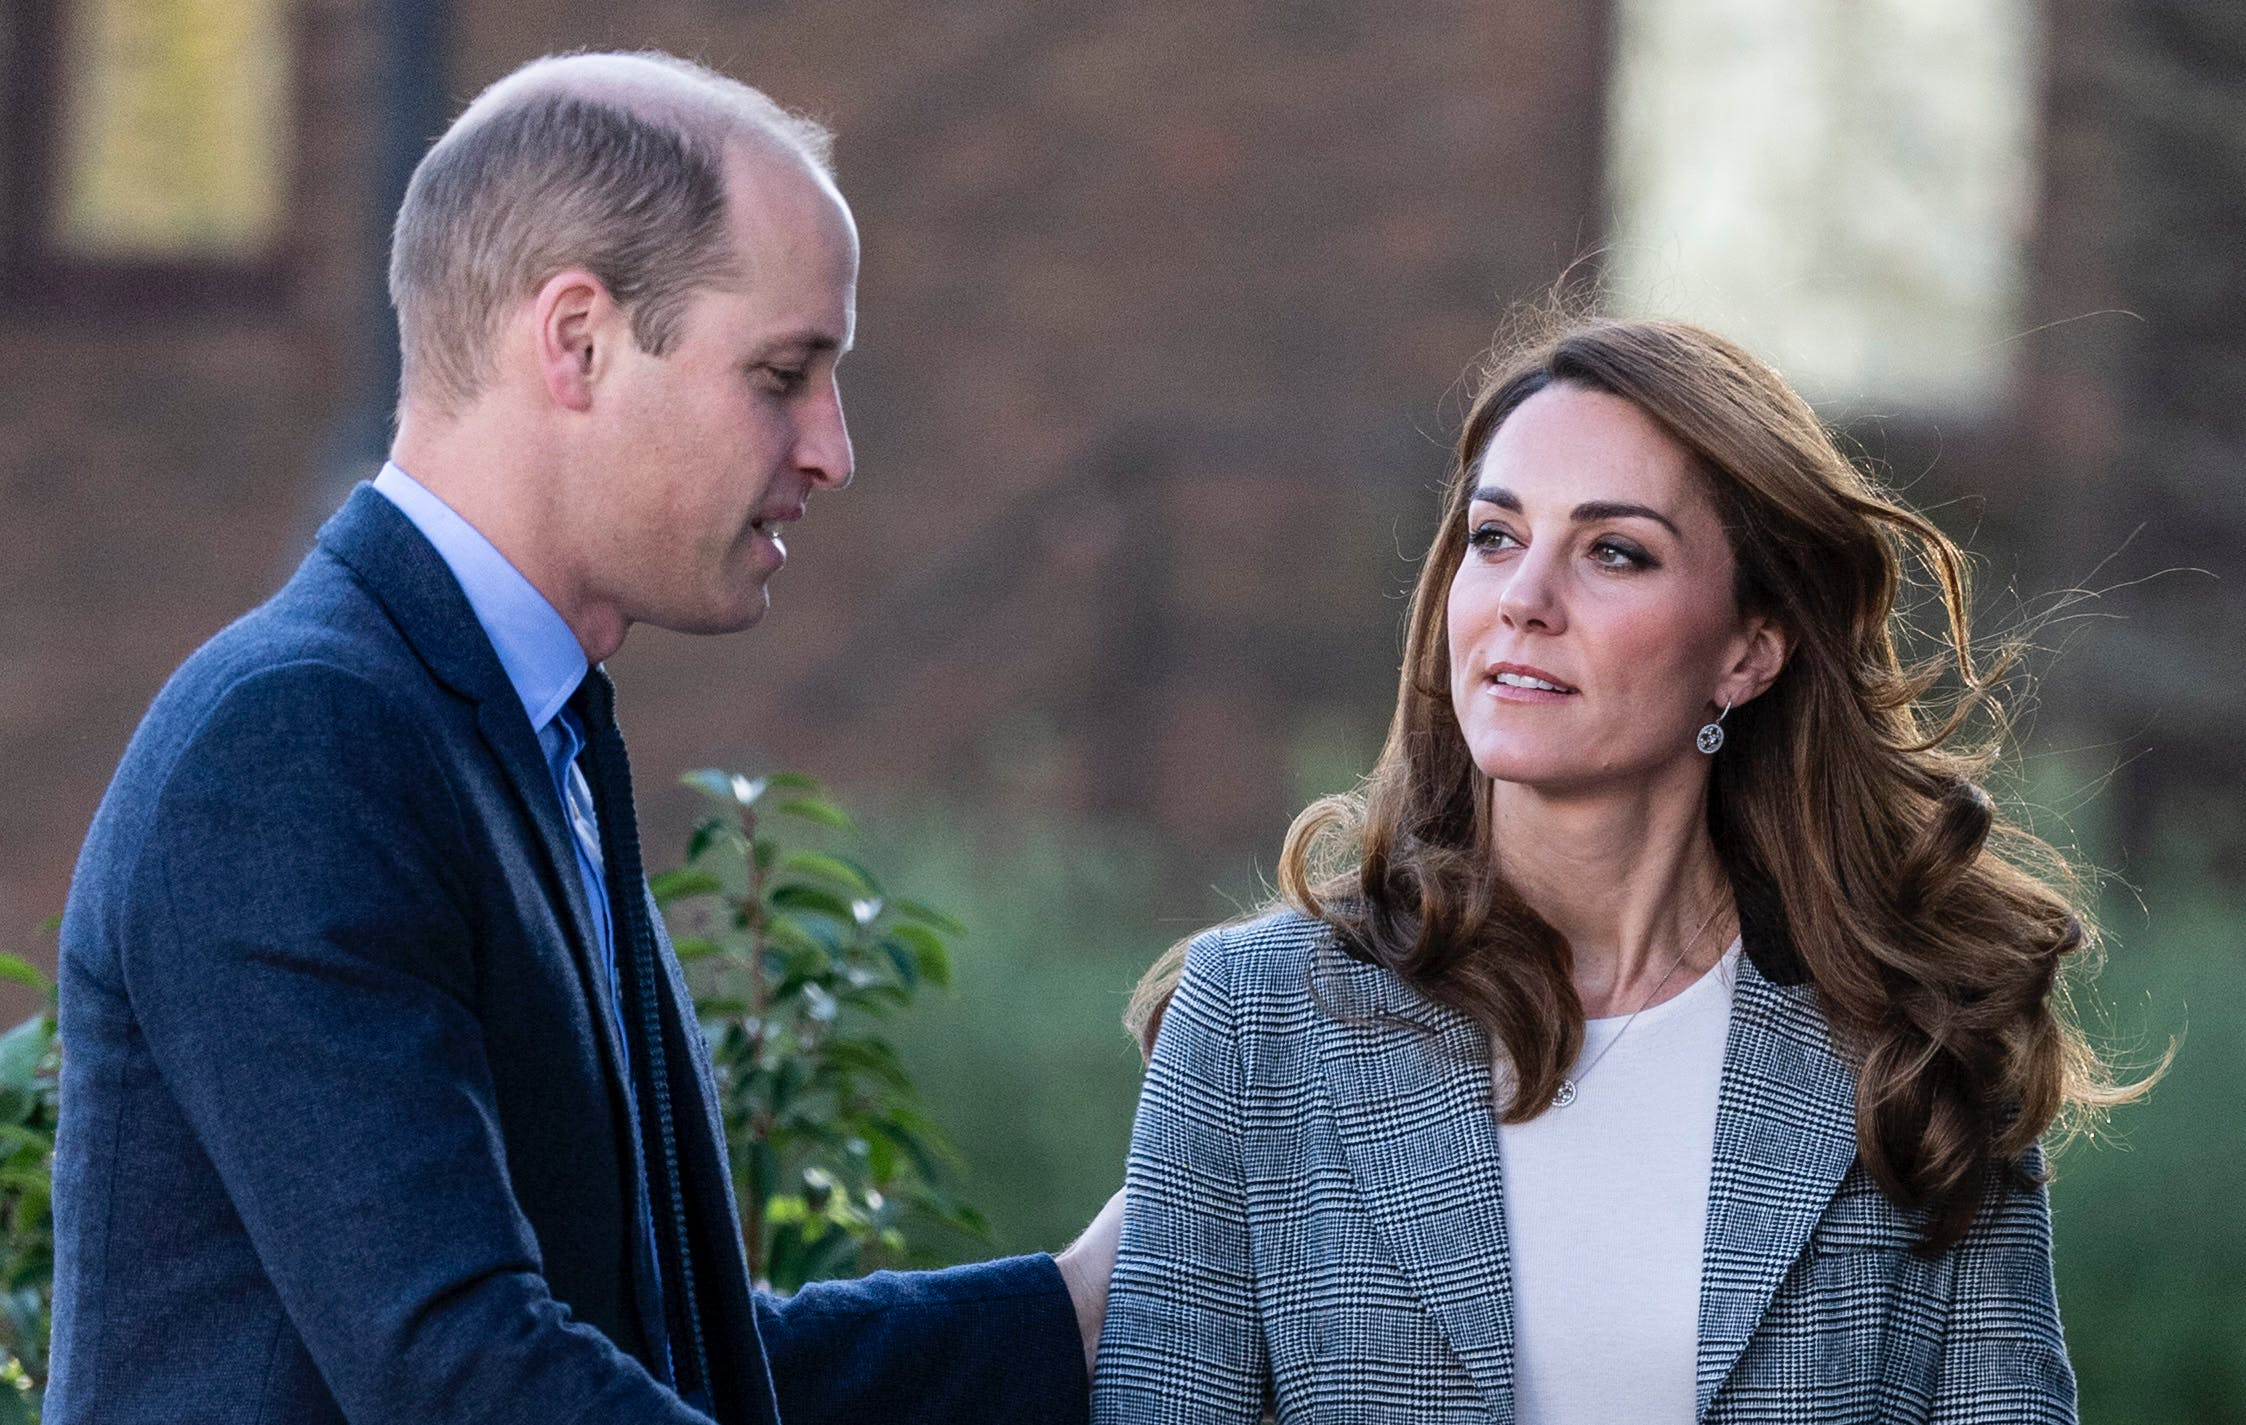 Kate Middleton & Prince William Shared Some Rare PDA Moments at Their Shout Engagement